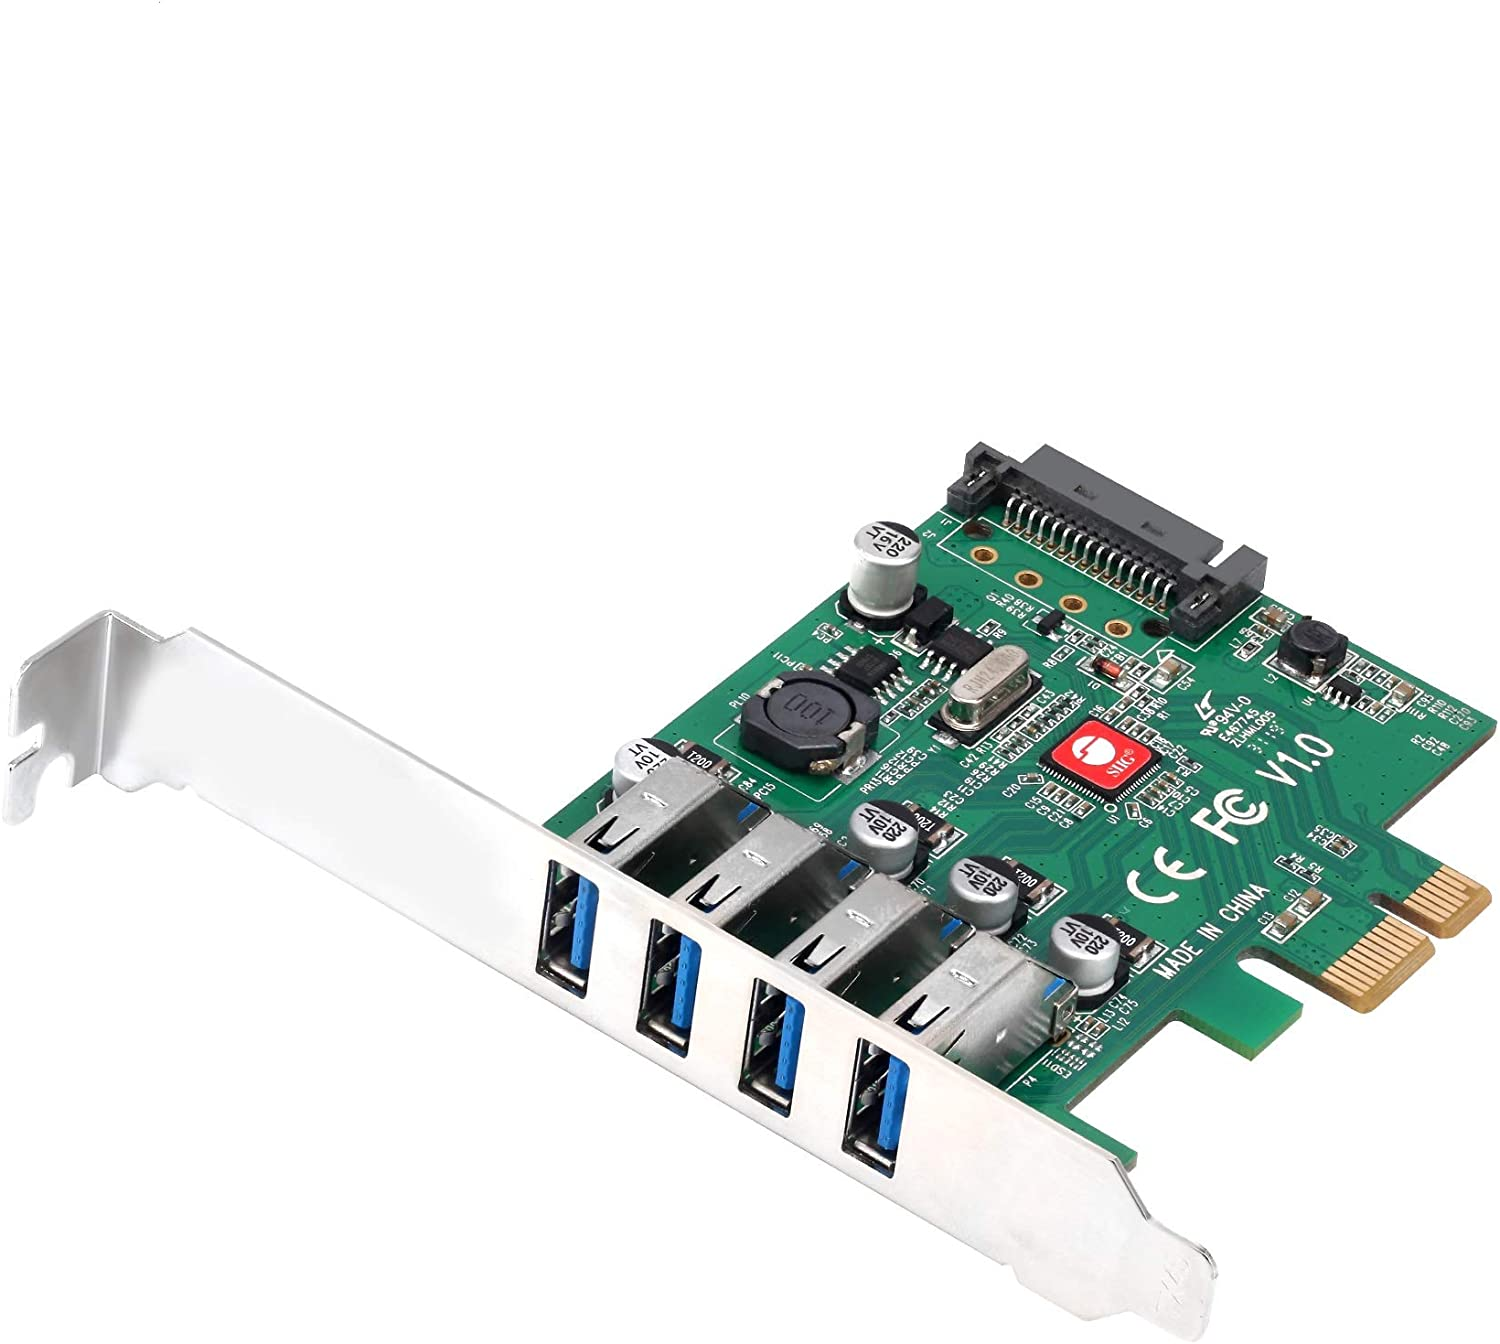 SIIG Dual Profile [DP] USB 3.0 4-Port (5Gbps) PCIe 2.0 Host Expansion Card Adapter for Windows Desktop PC with PCI Express Slot